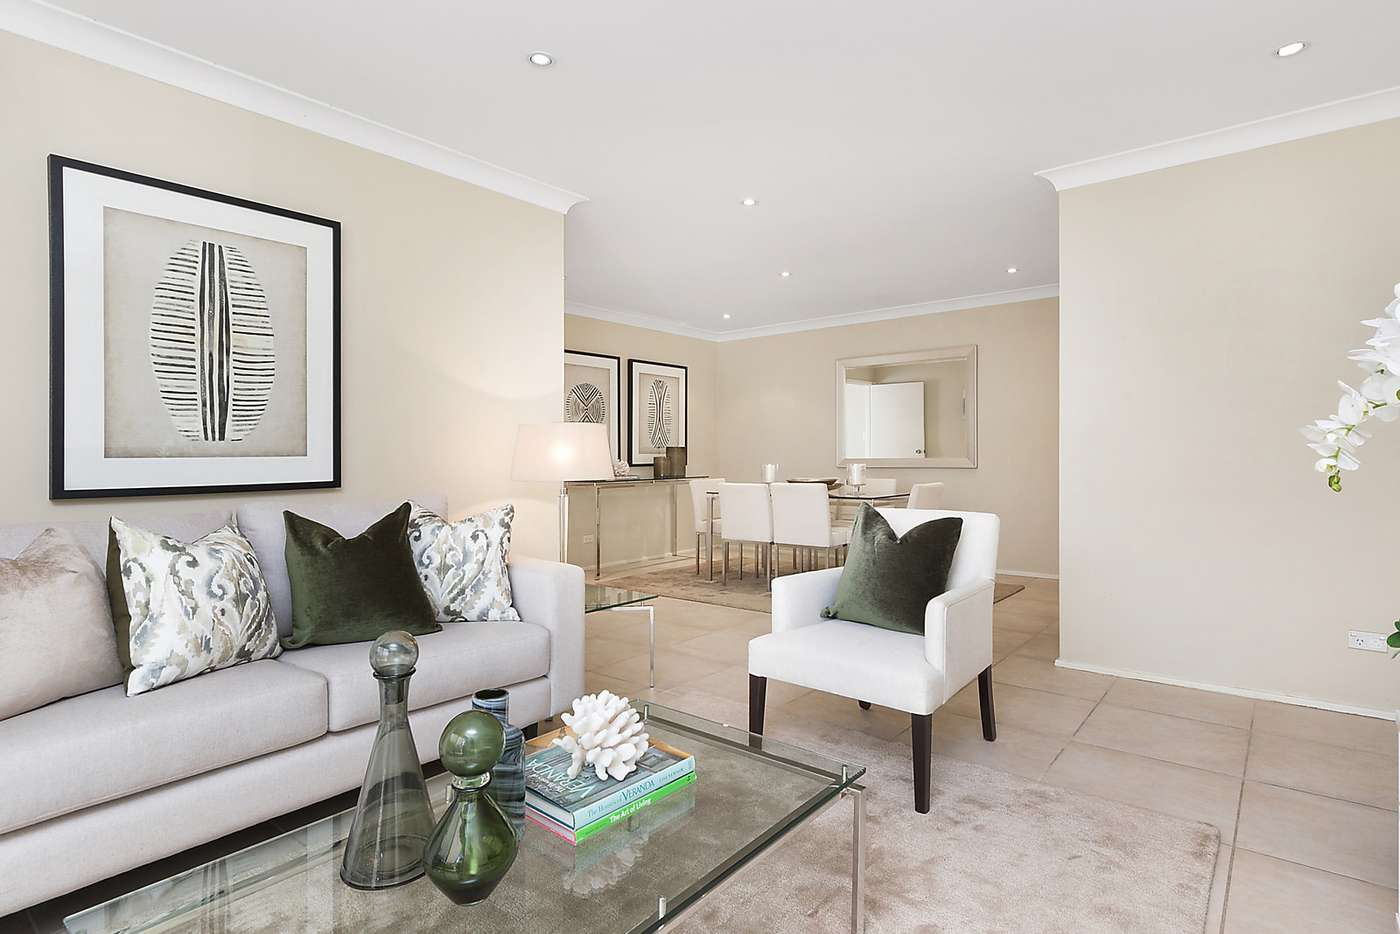 Main view of Homely villa listing, 12/13 Busaco Road, Marsfield NSW 2122